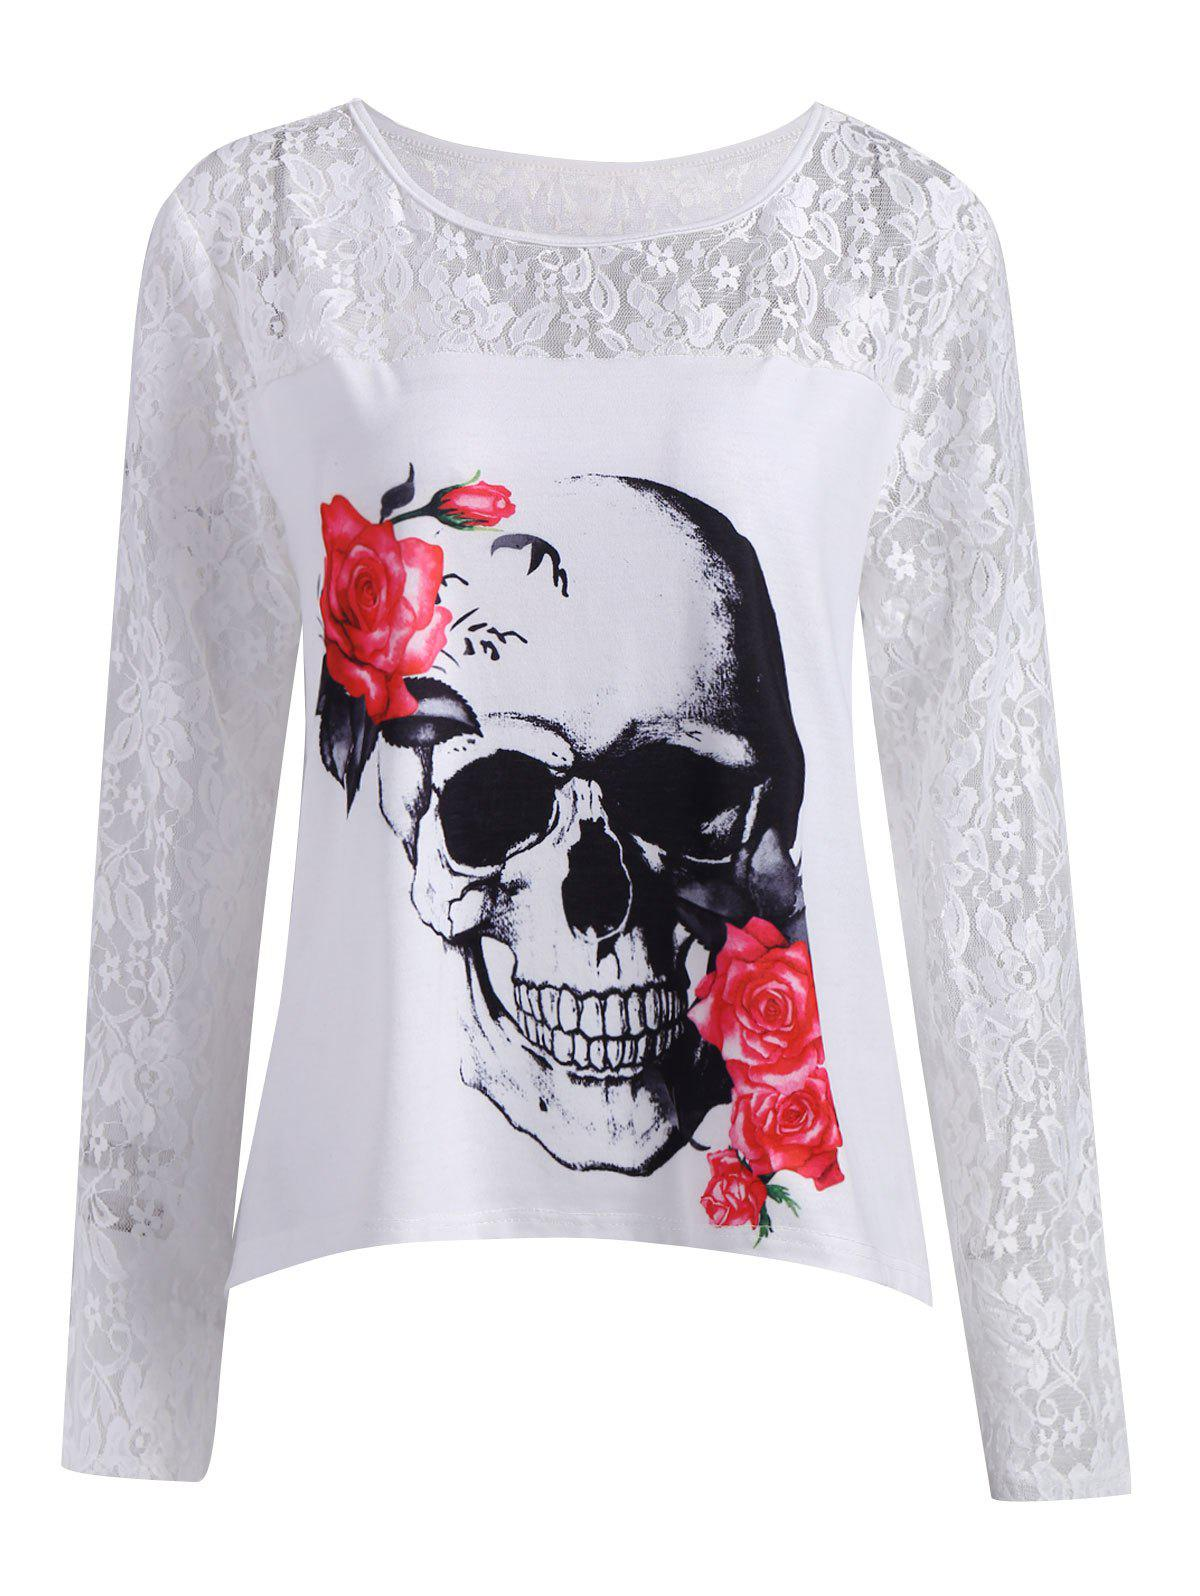 Plus Size Lace Panel Halloween Skull T-shirt up air upair chase 5 8g fpv 12mp rc quadcopter